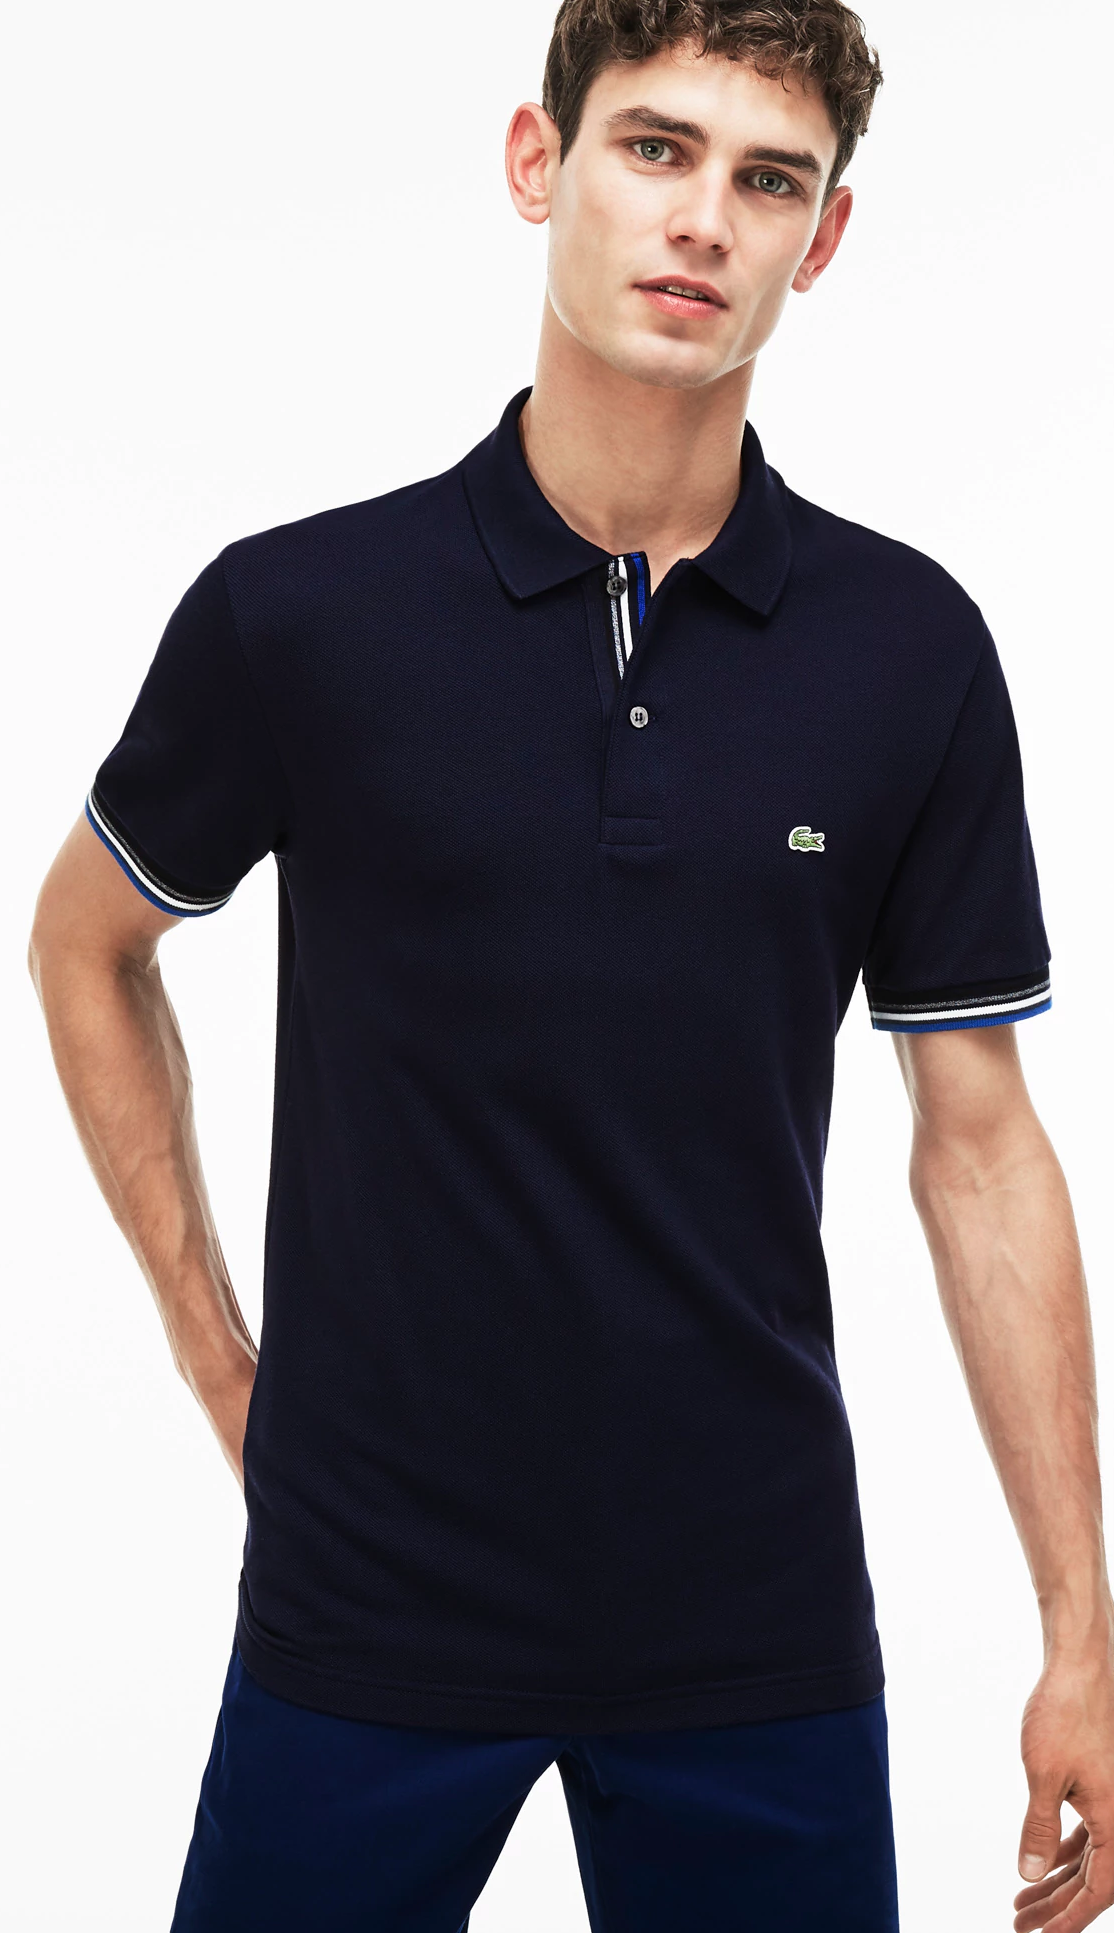 623a008ac MEN S SLIM FIT PIPED TWO-PLY COTTON PETIT PIQUÉ POLO  NAVY BLUE ...